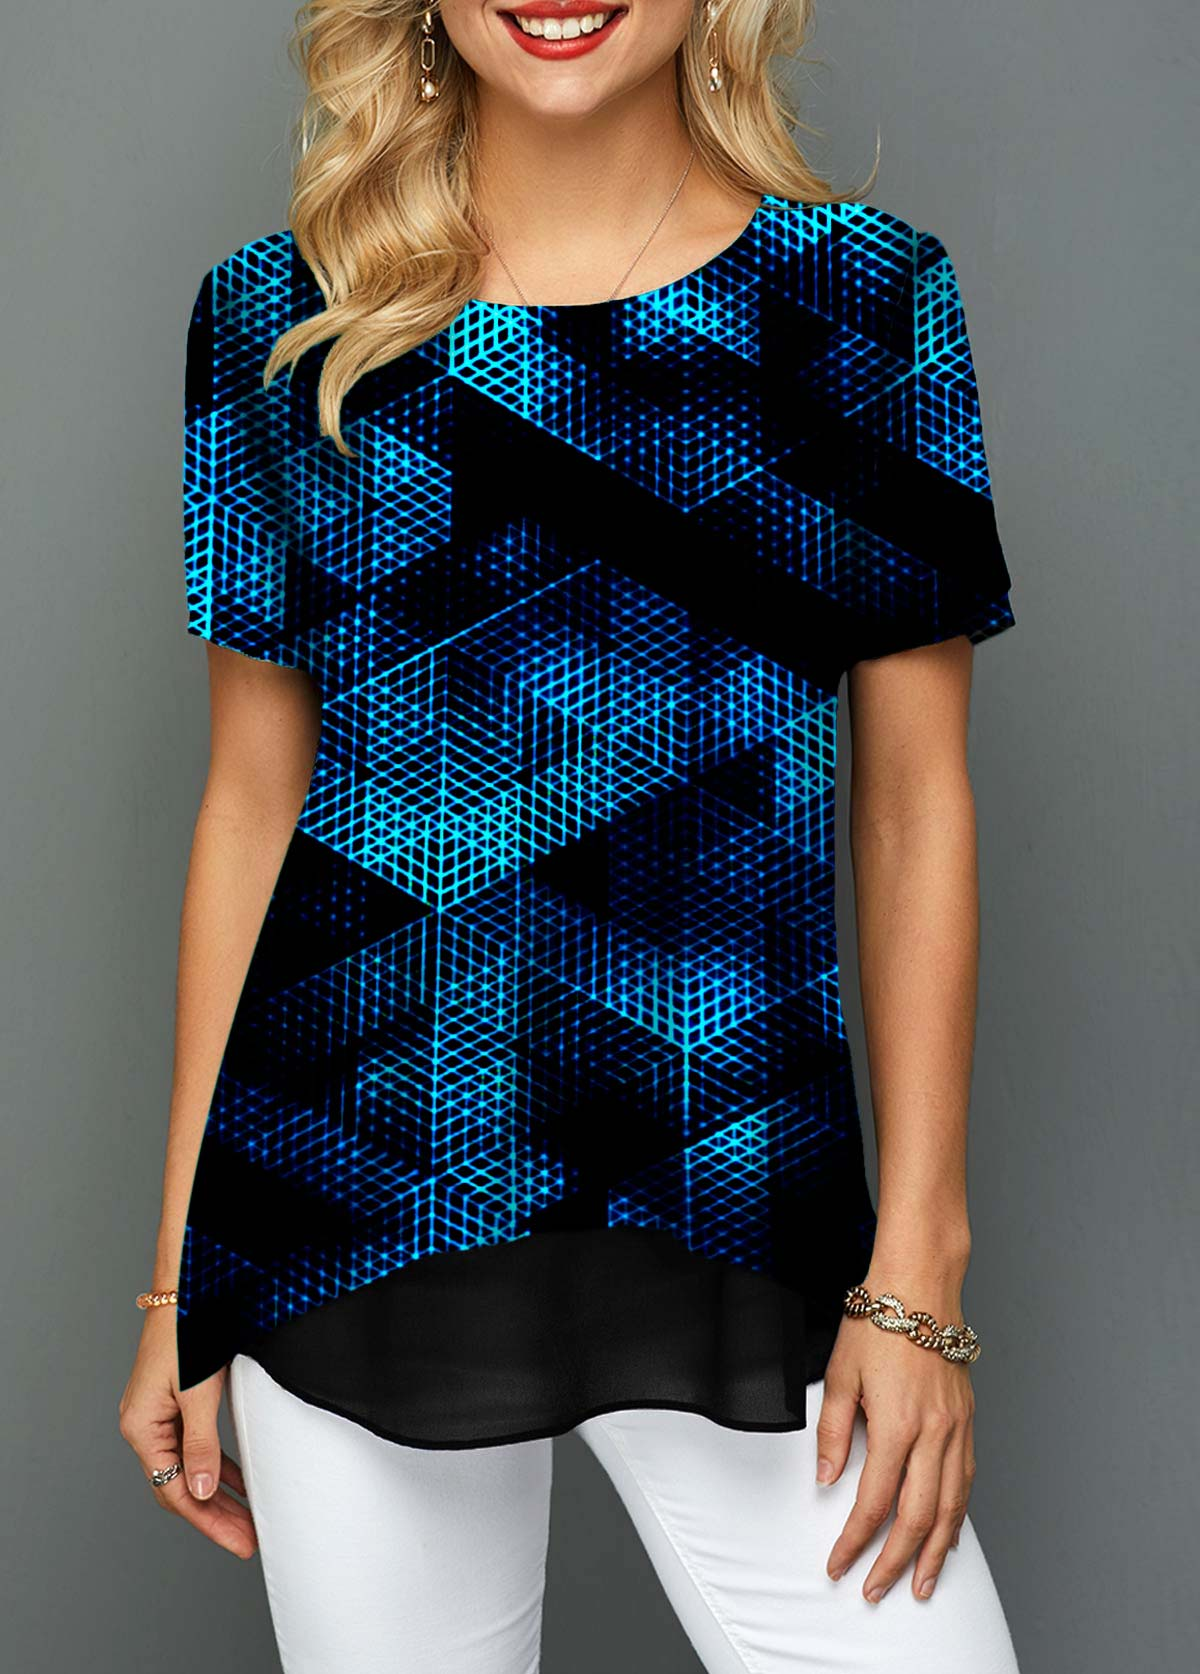 Short Sleeve Round Neck Psychedelic Print T Shirt